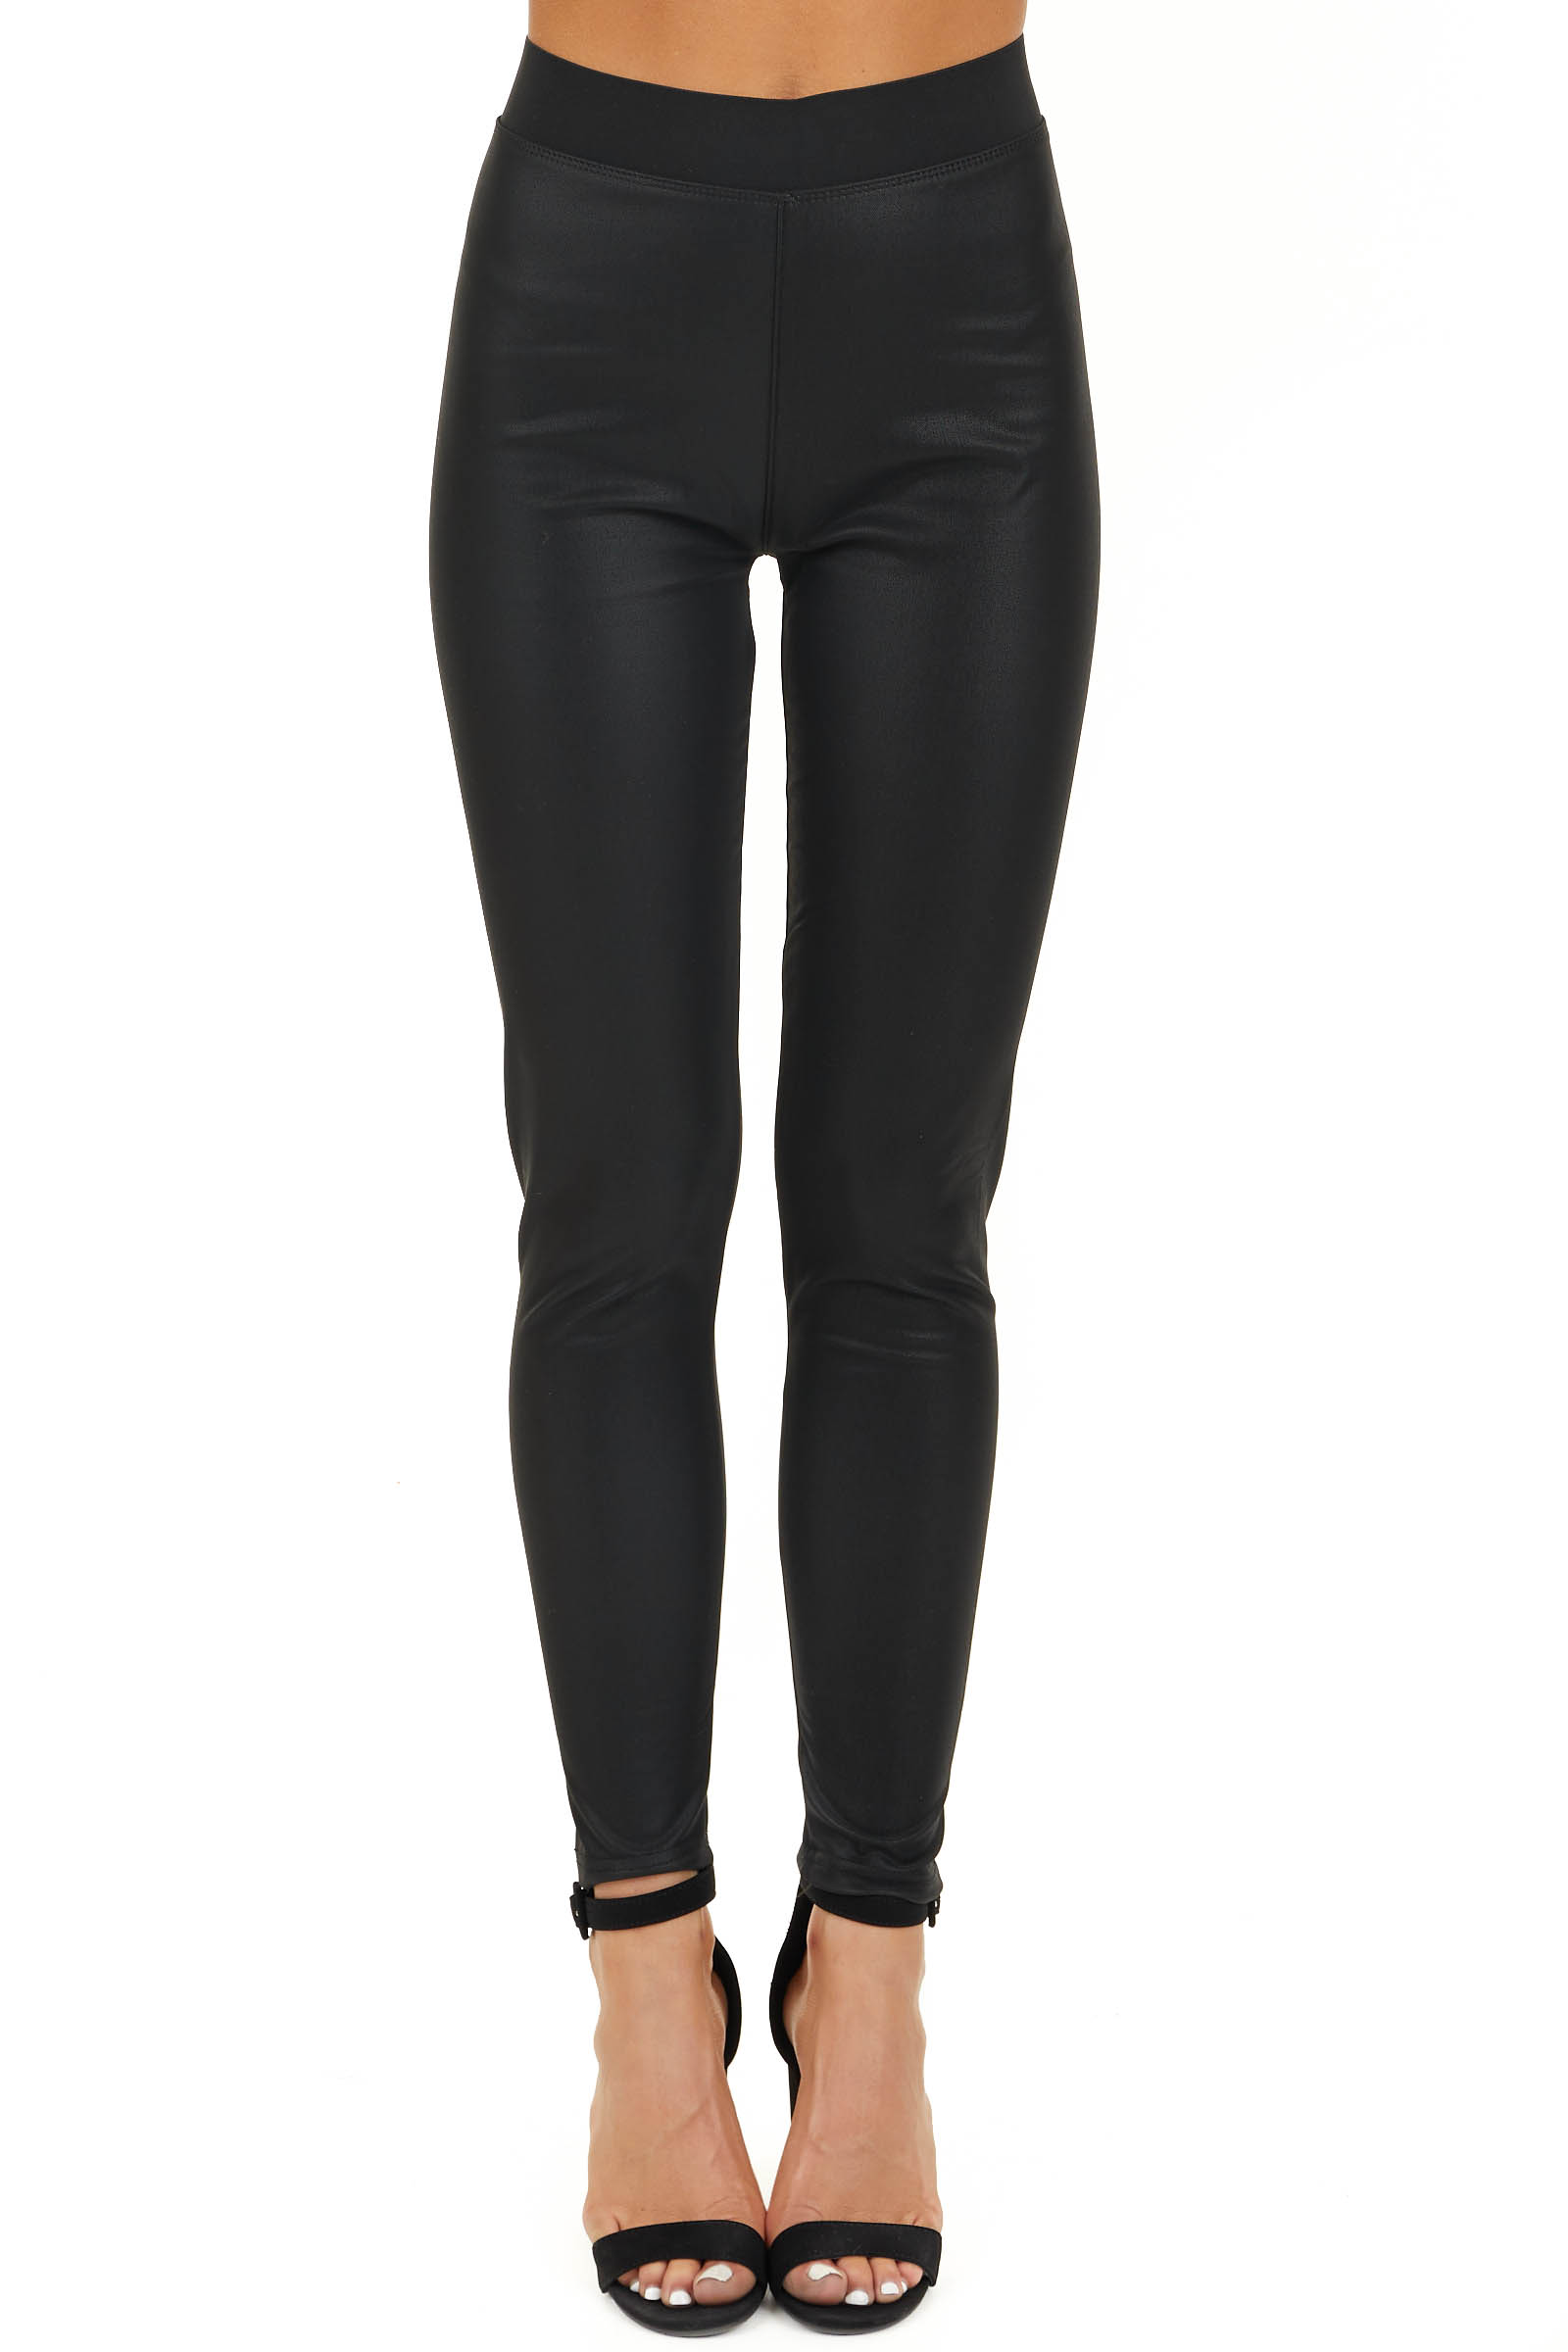 Black Faux Leather Fleece Lined Leggings with Elastic Waist front view